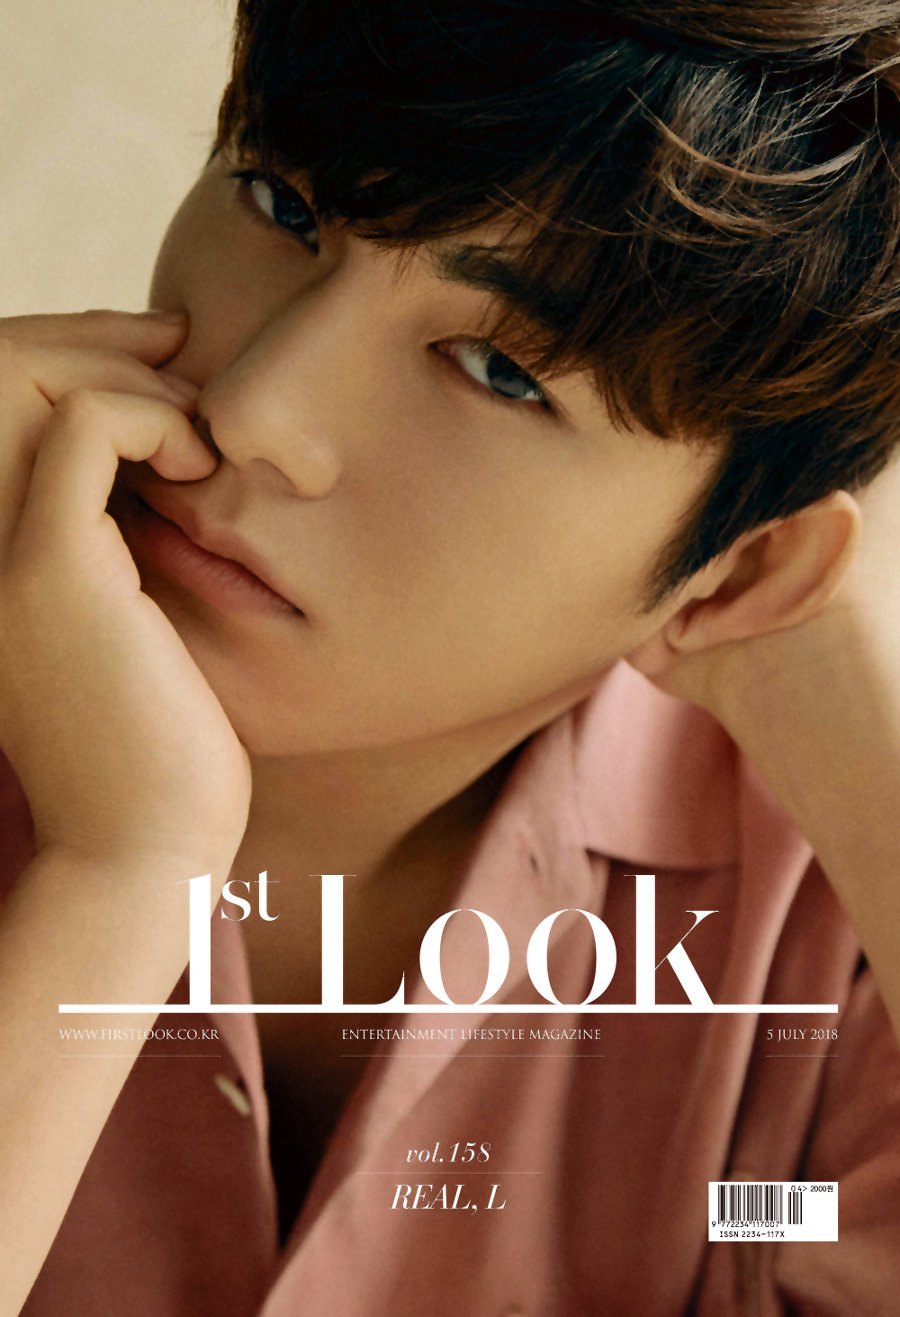 1st Look Korea 第158期